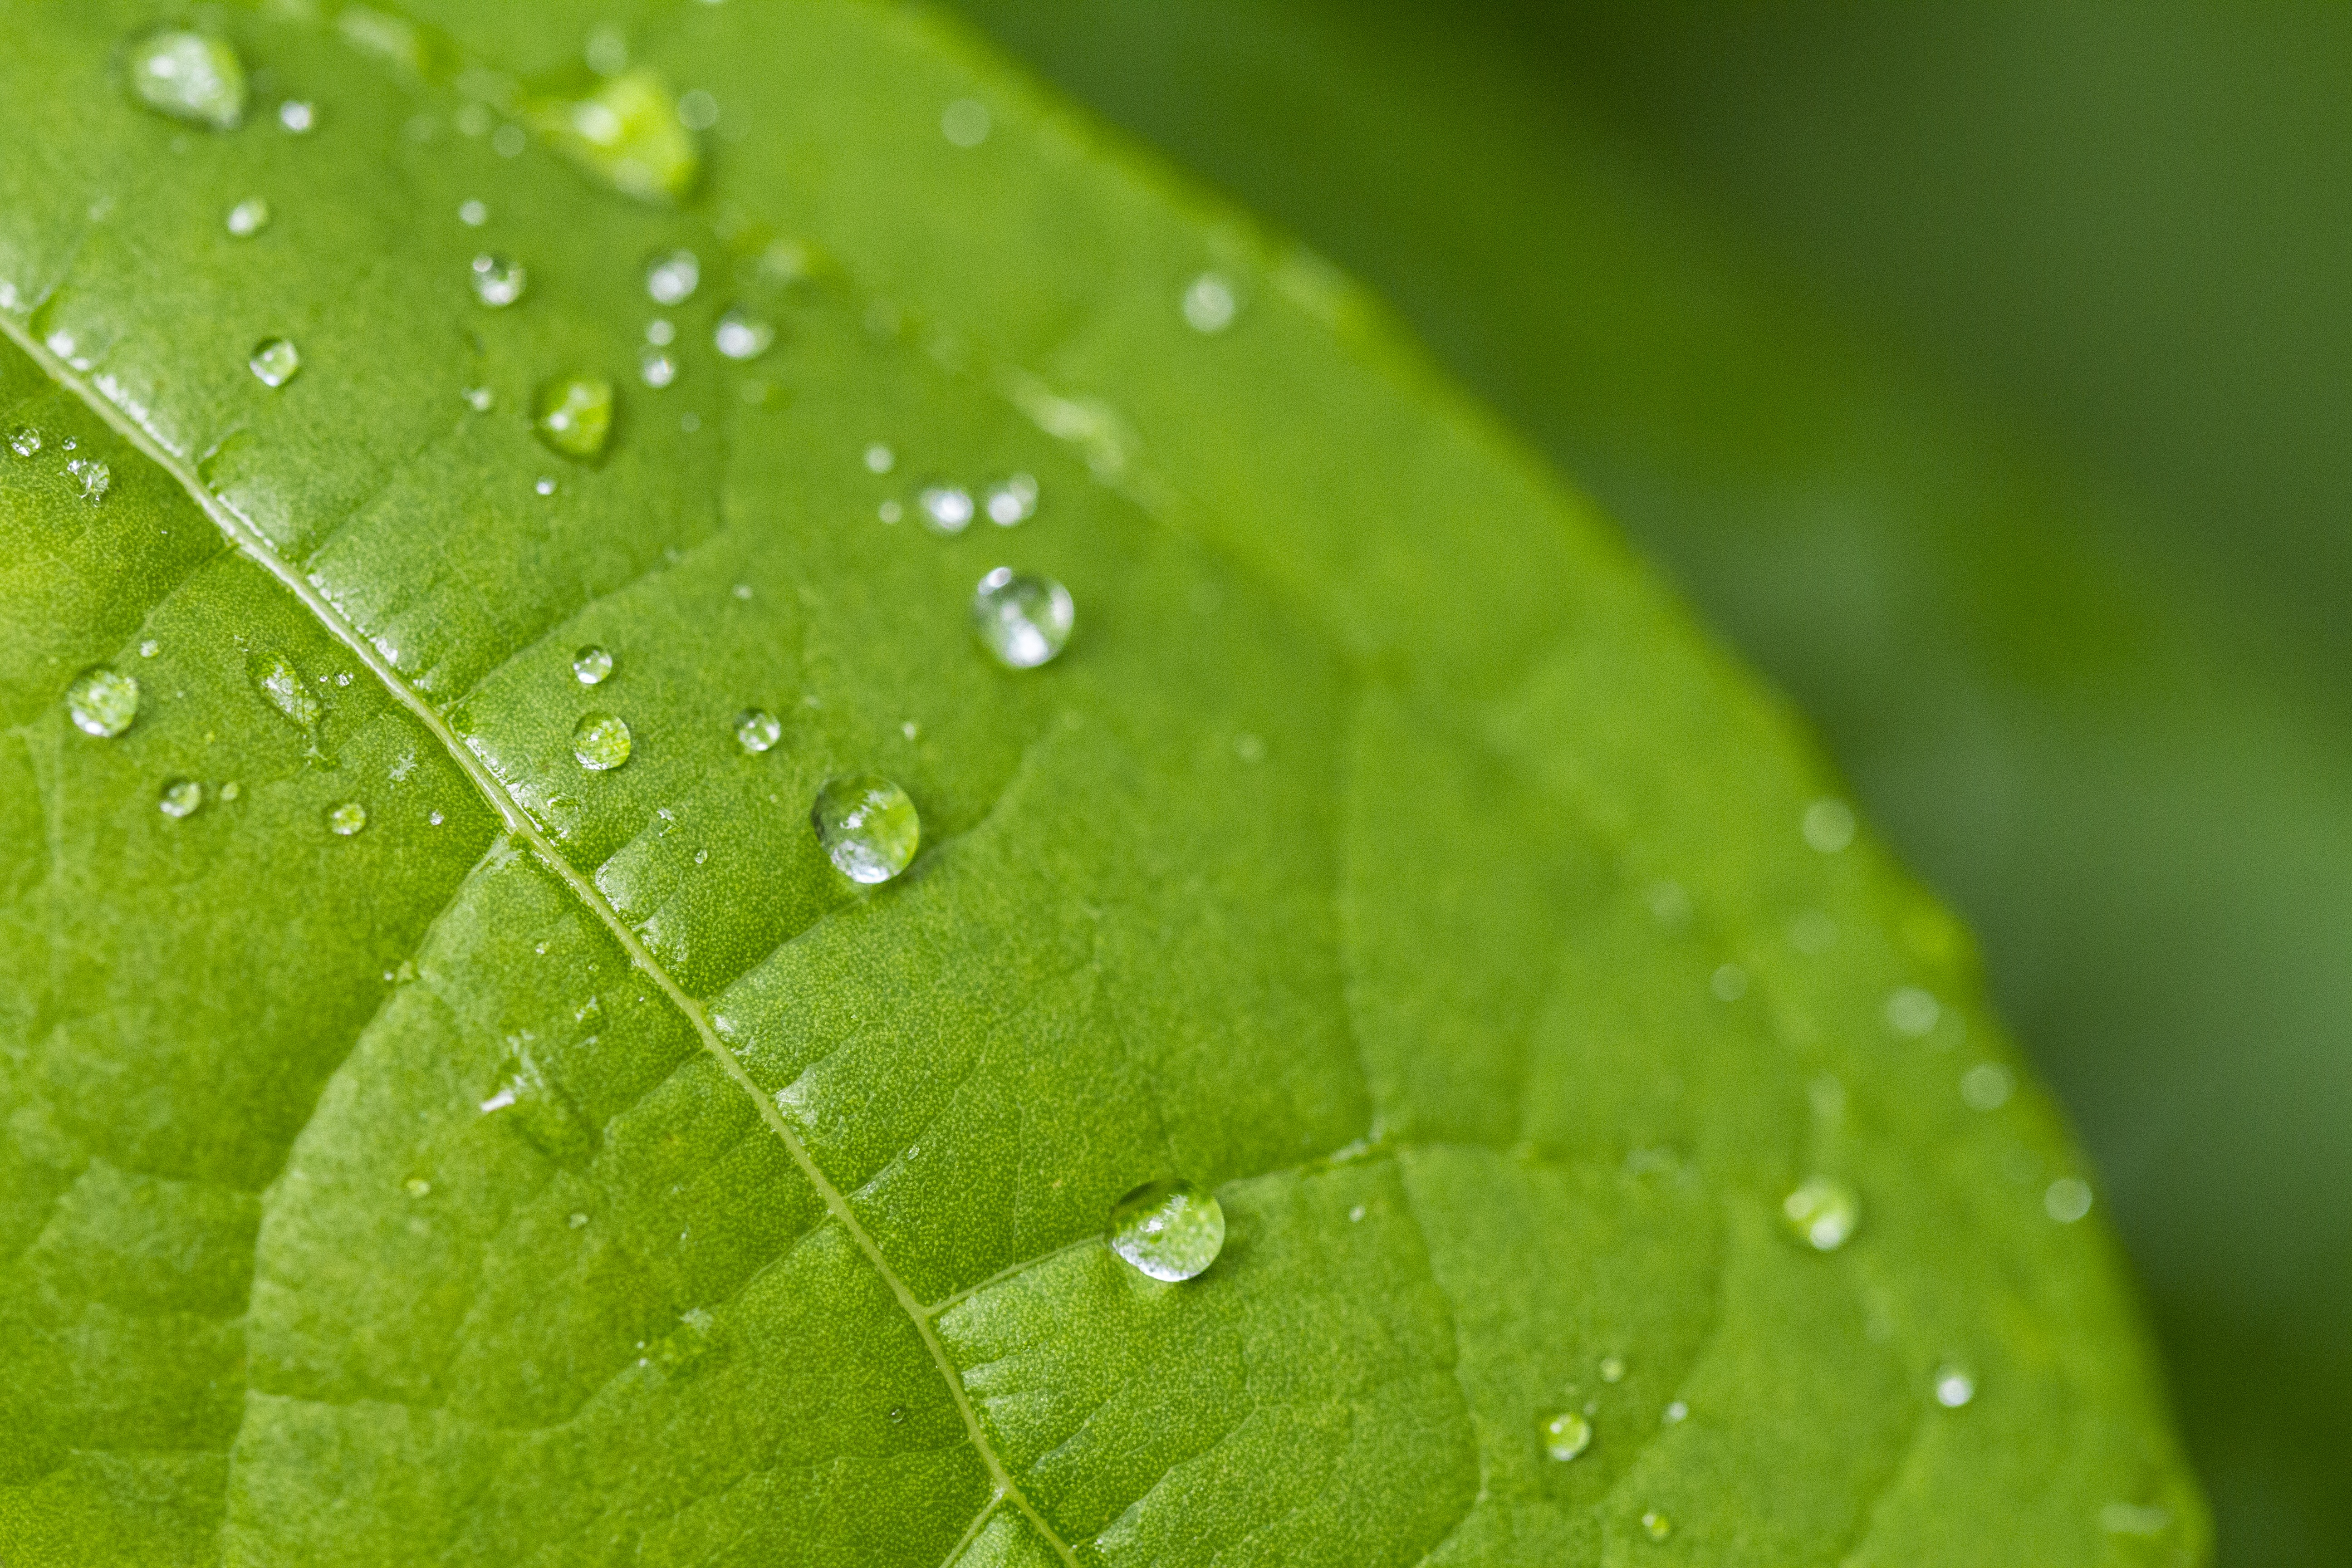 Leaf with dew, raindrops, water, leaf, nature, green, dew, moisture, forest, outside